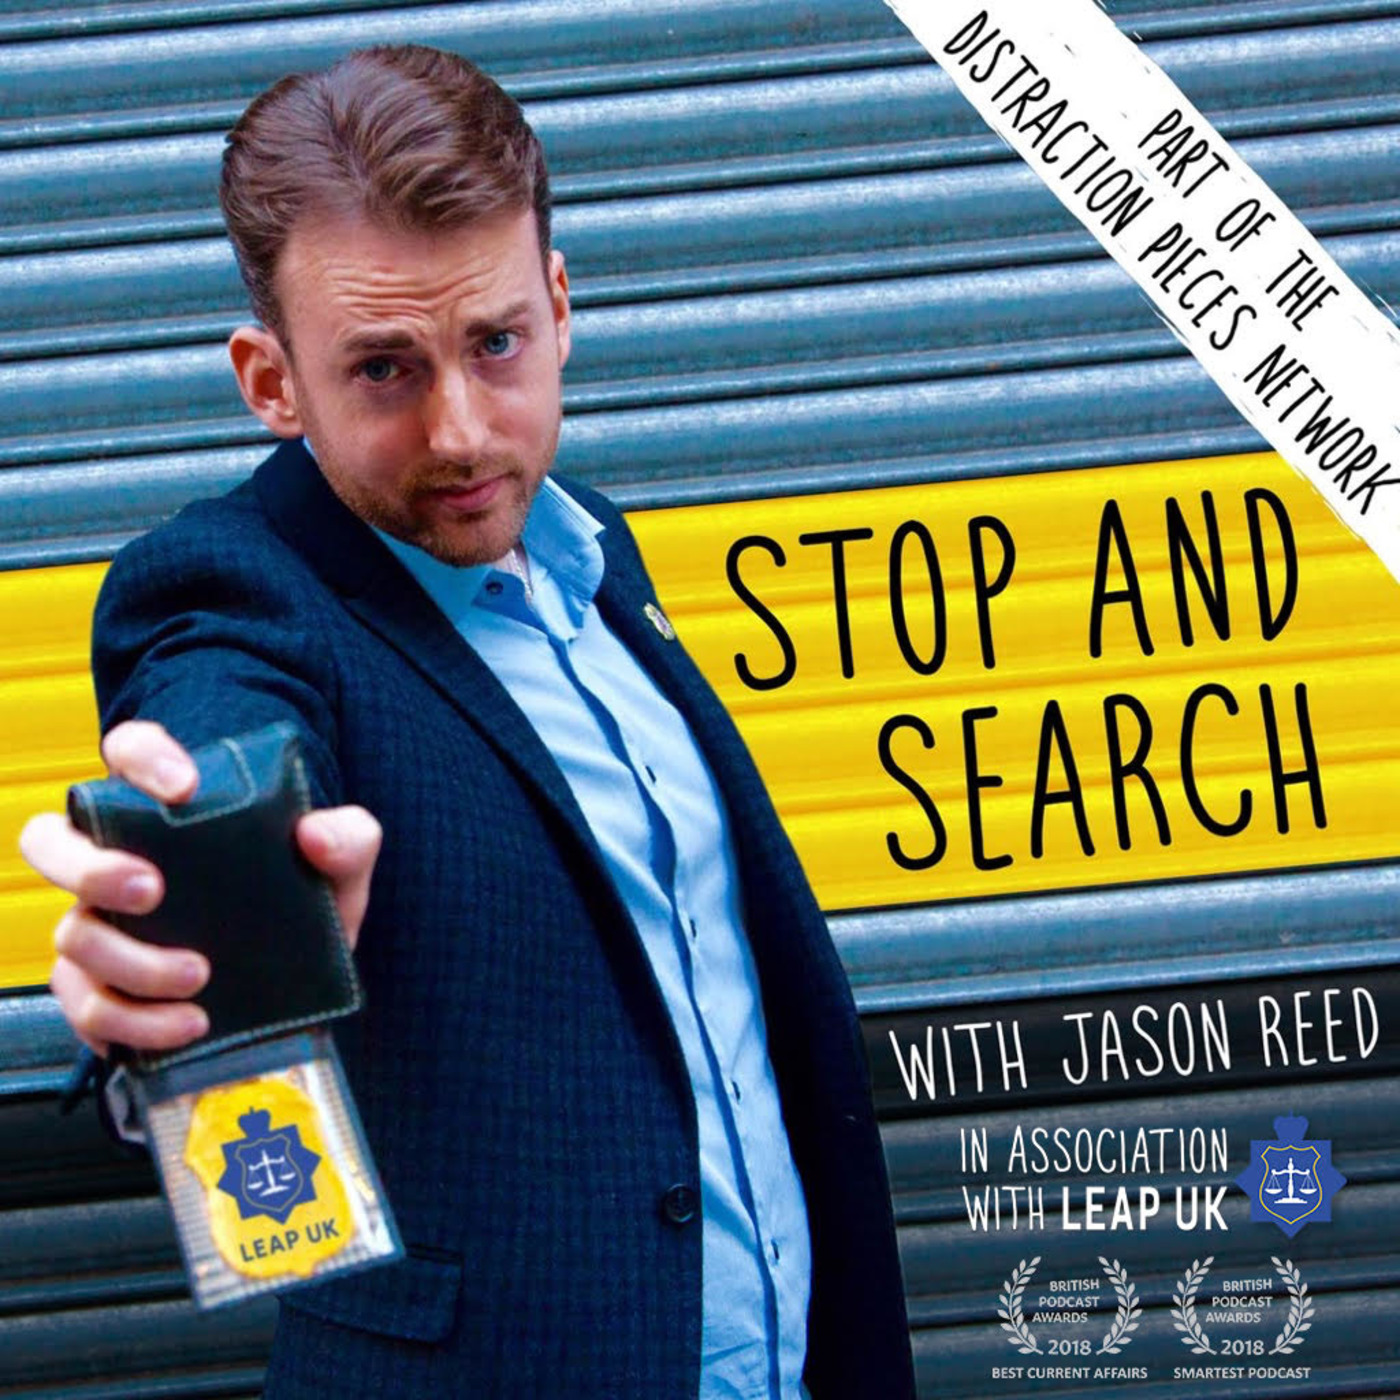 Jason Reed - LEAP UK